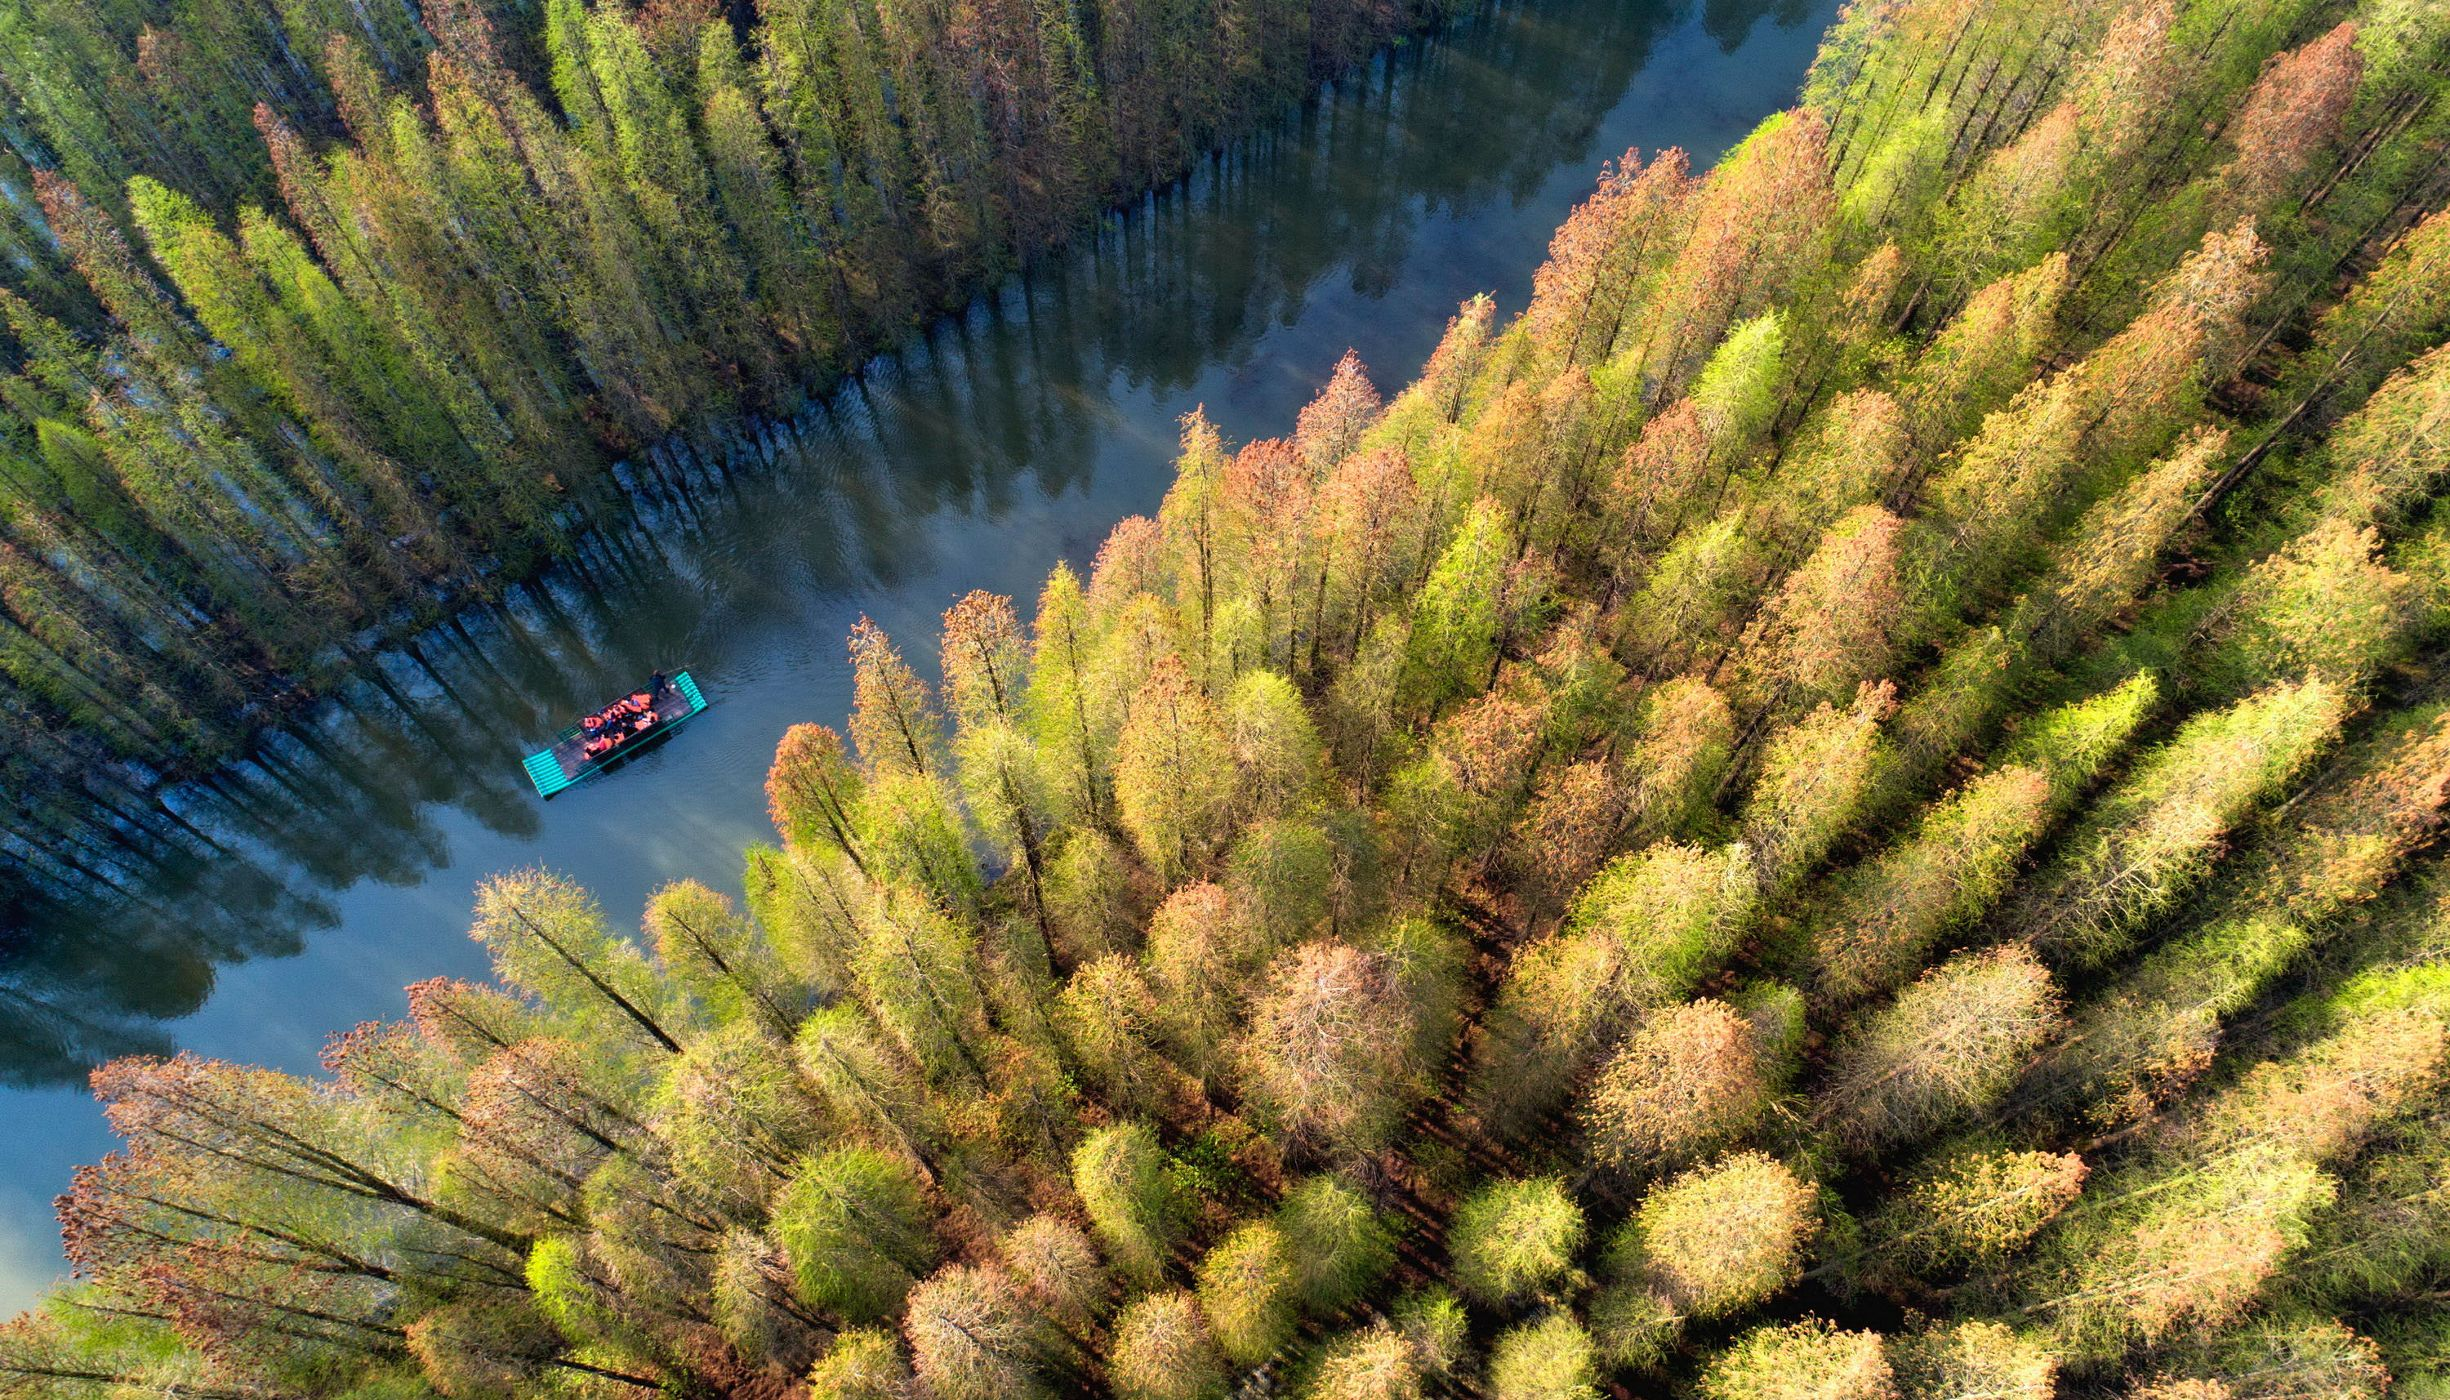 A boat travels down a river through the forest in China